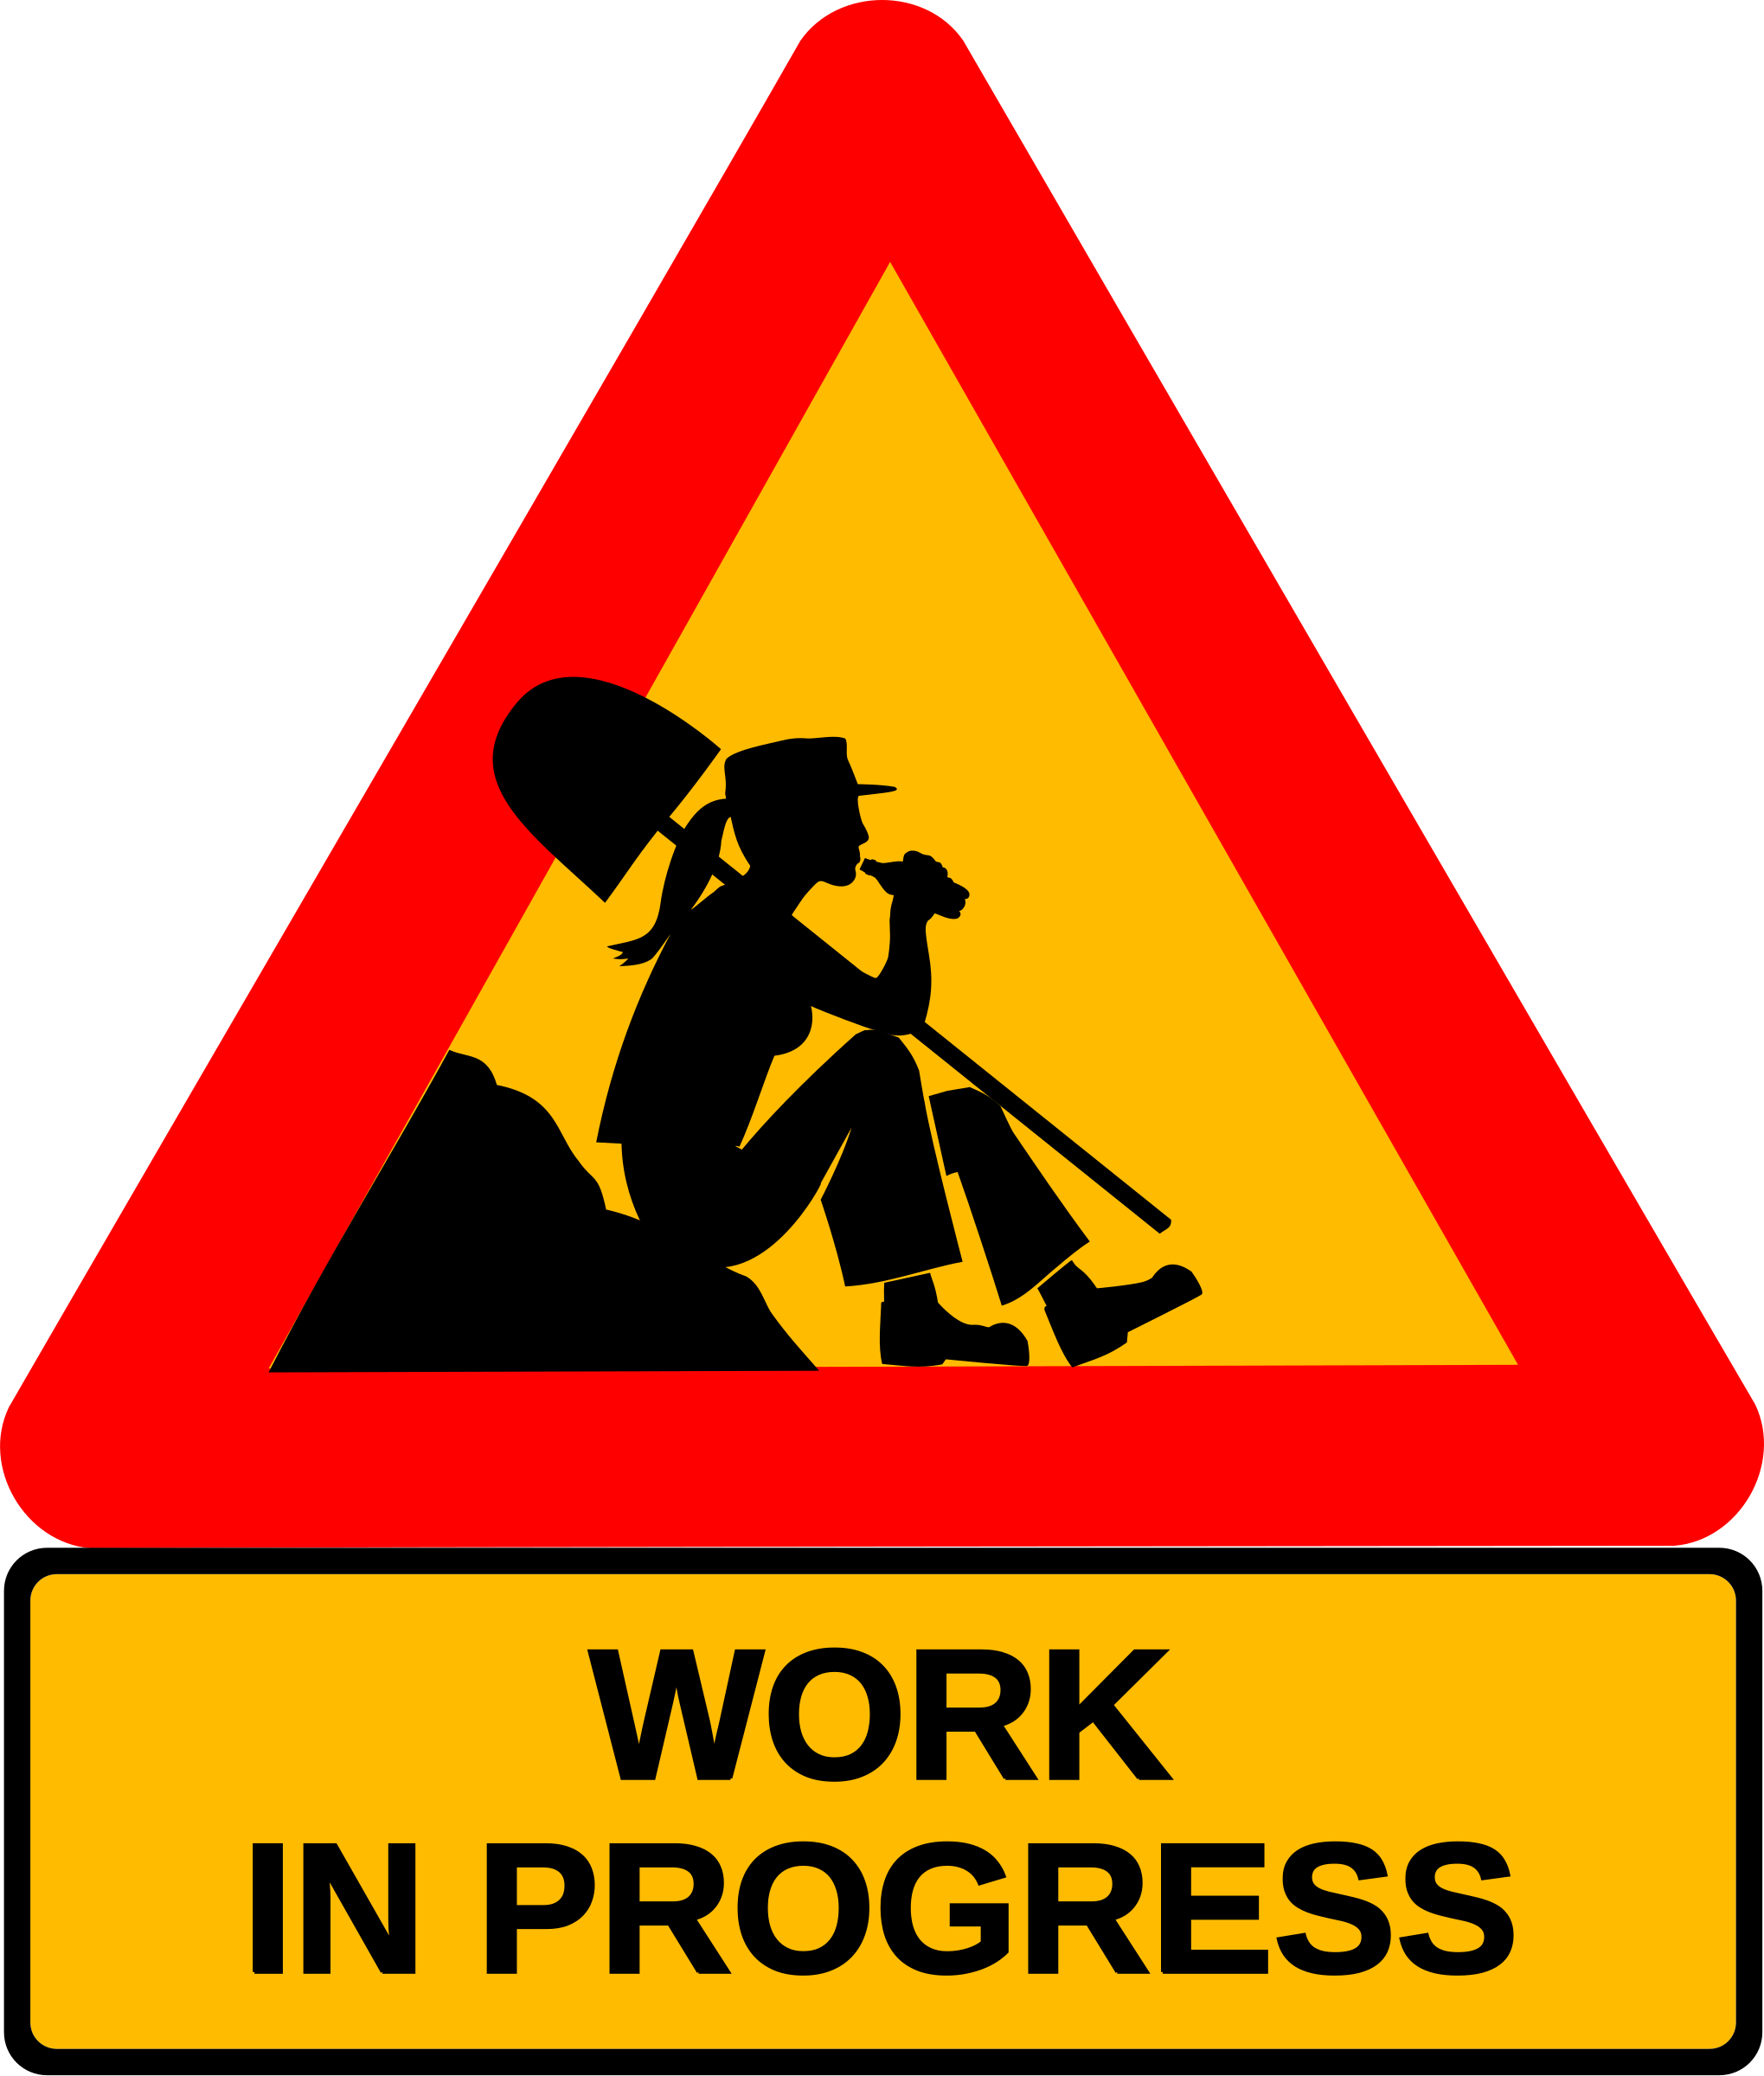 In progress big image. Working clipart road work